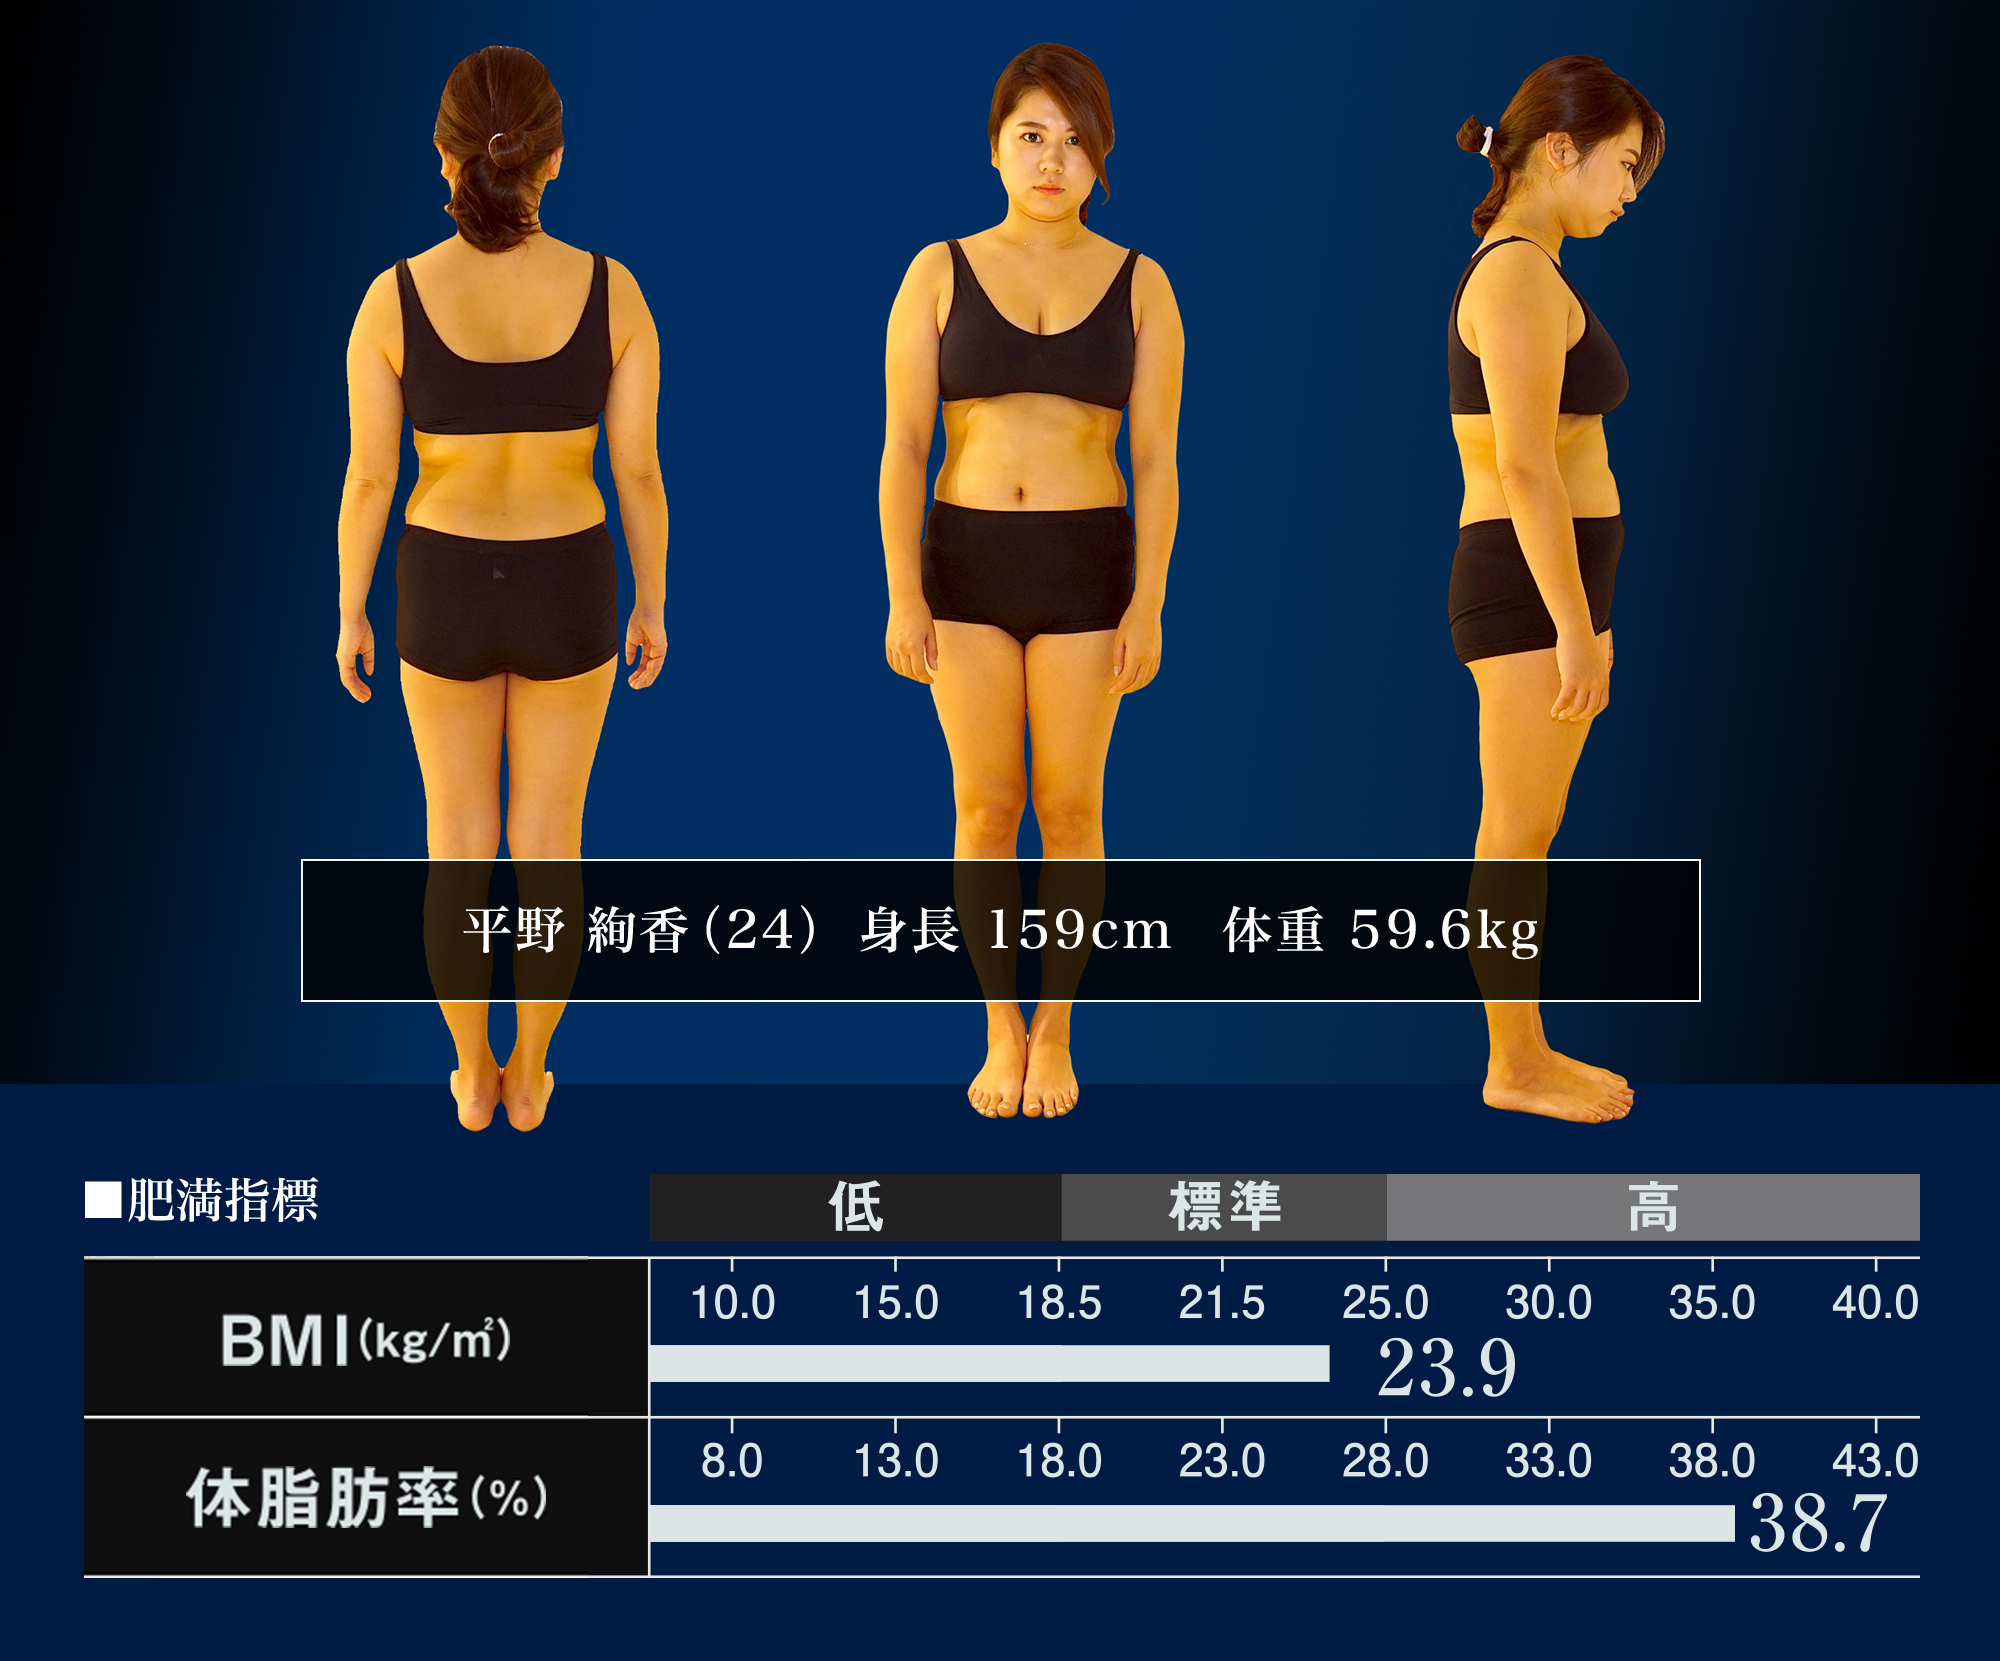 平野 絢香(24)Height 159cm Weight59.6kg